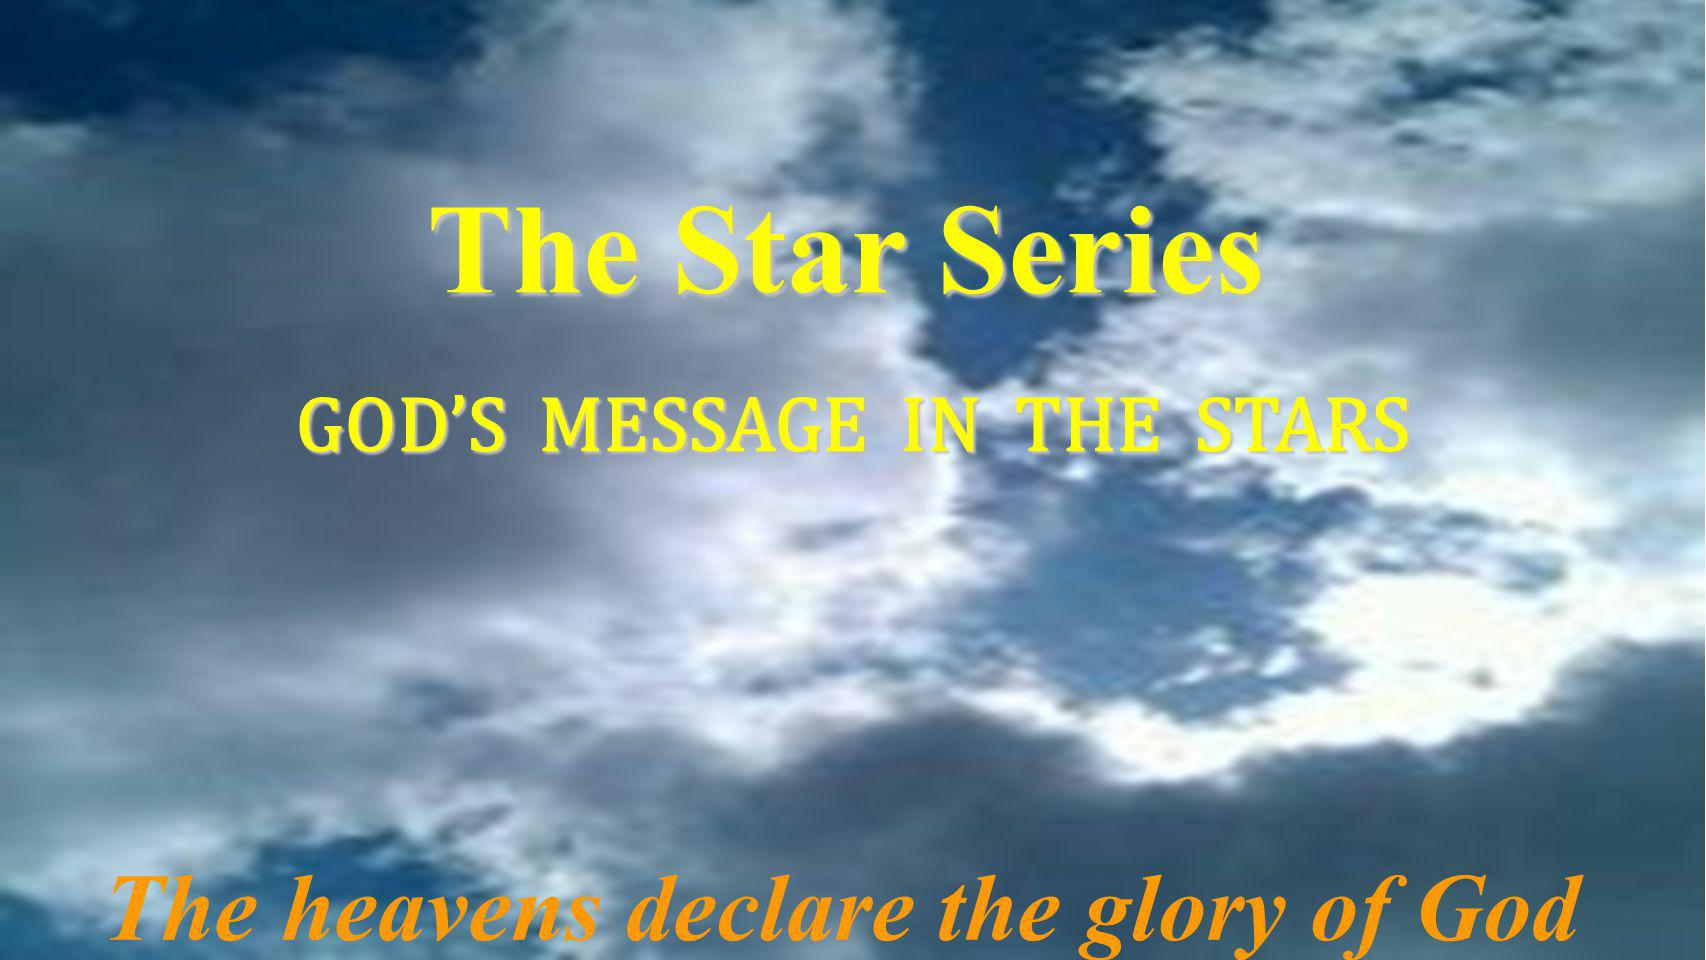 The Star Series GOD'S MESSAGE IN THE STARS The heavens declare the glory of God